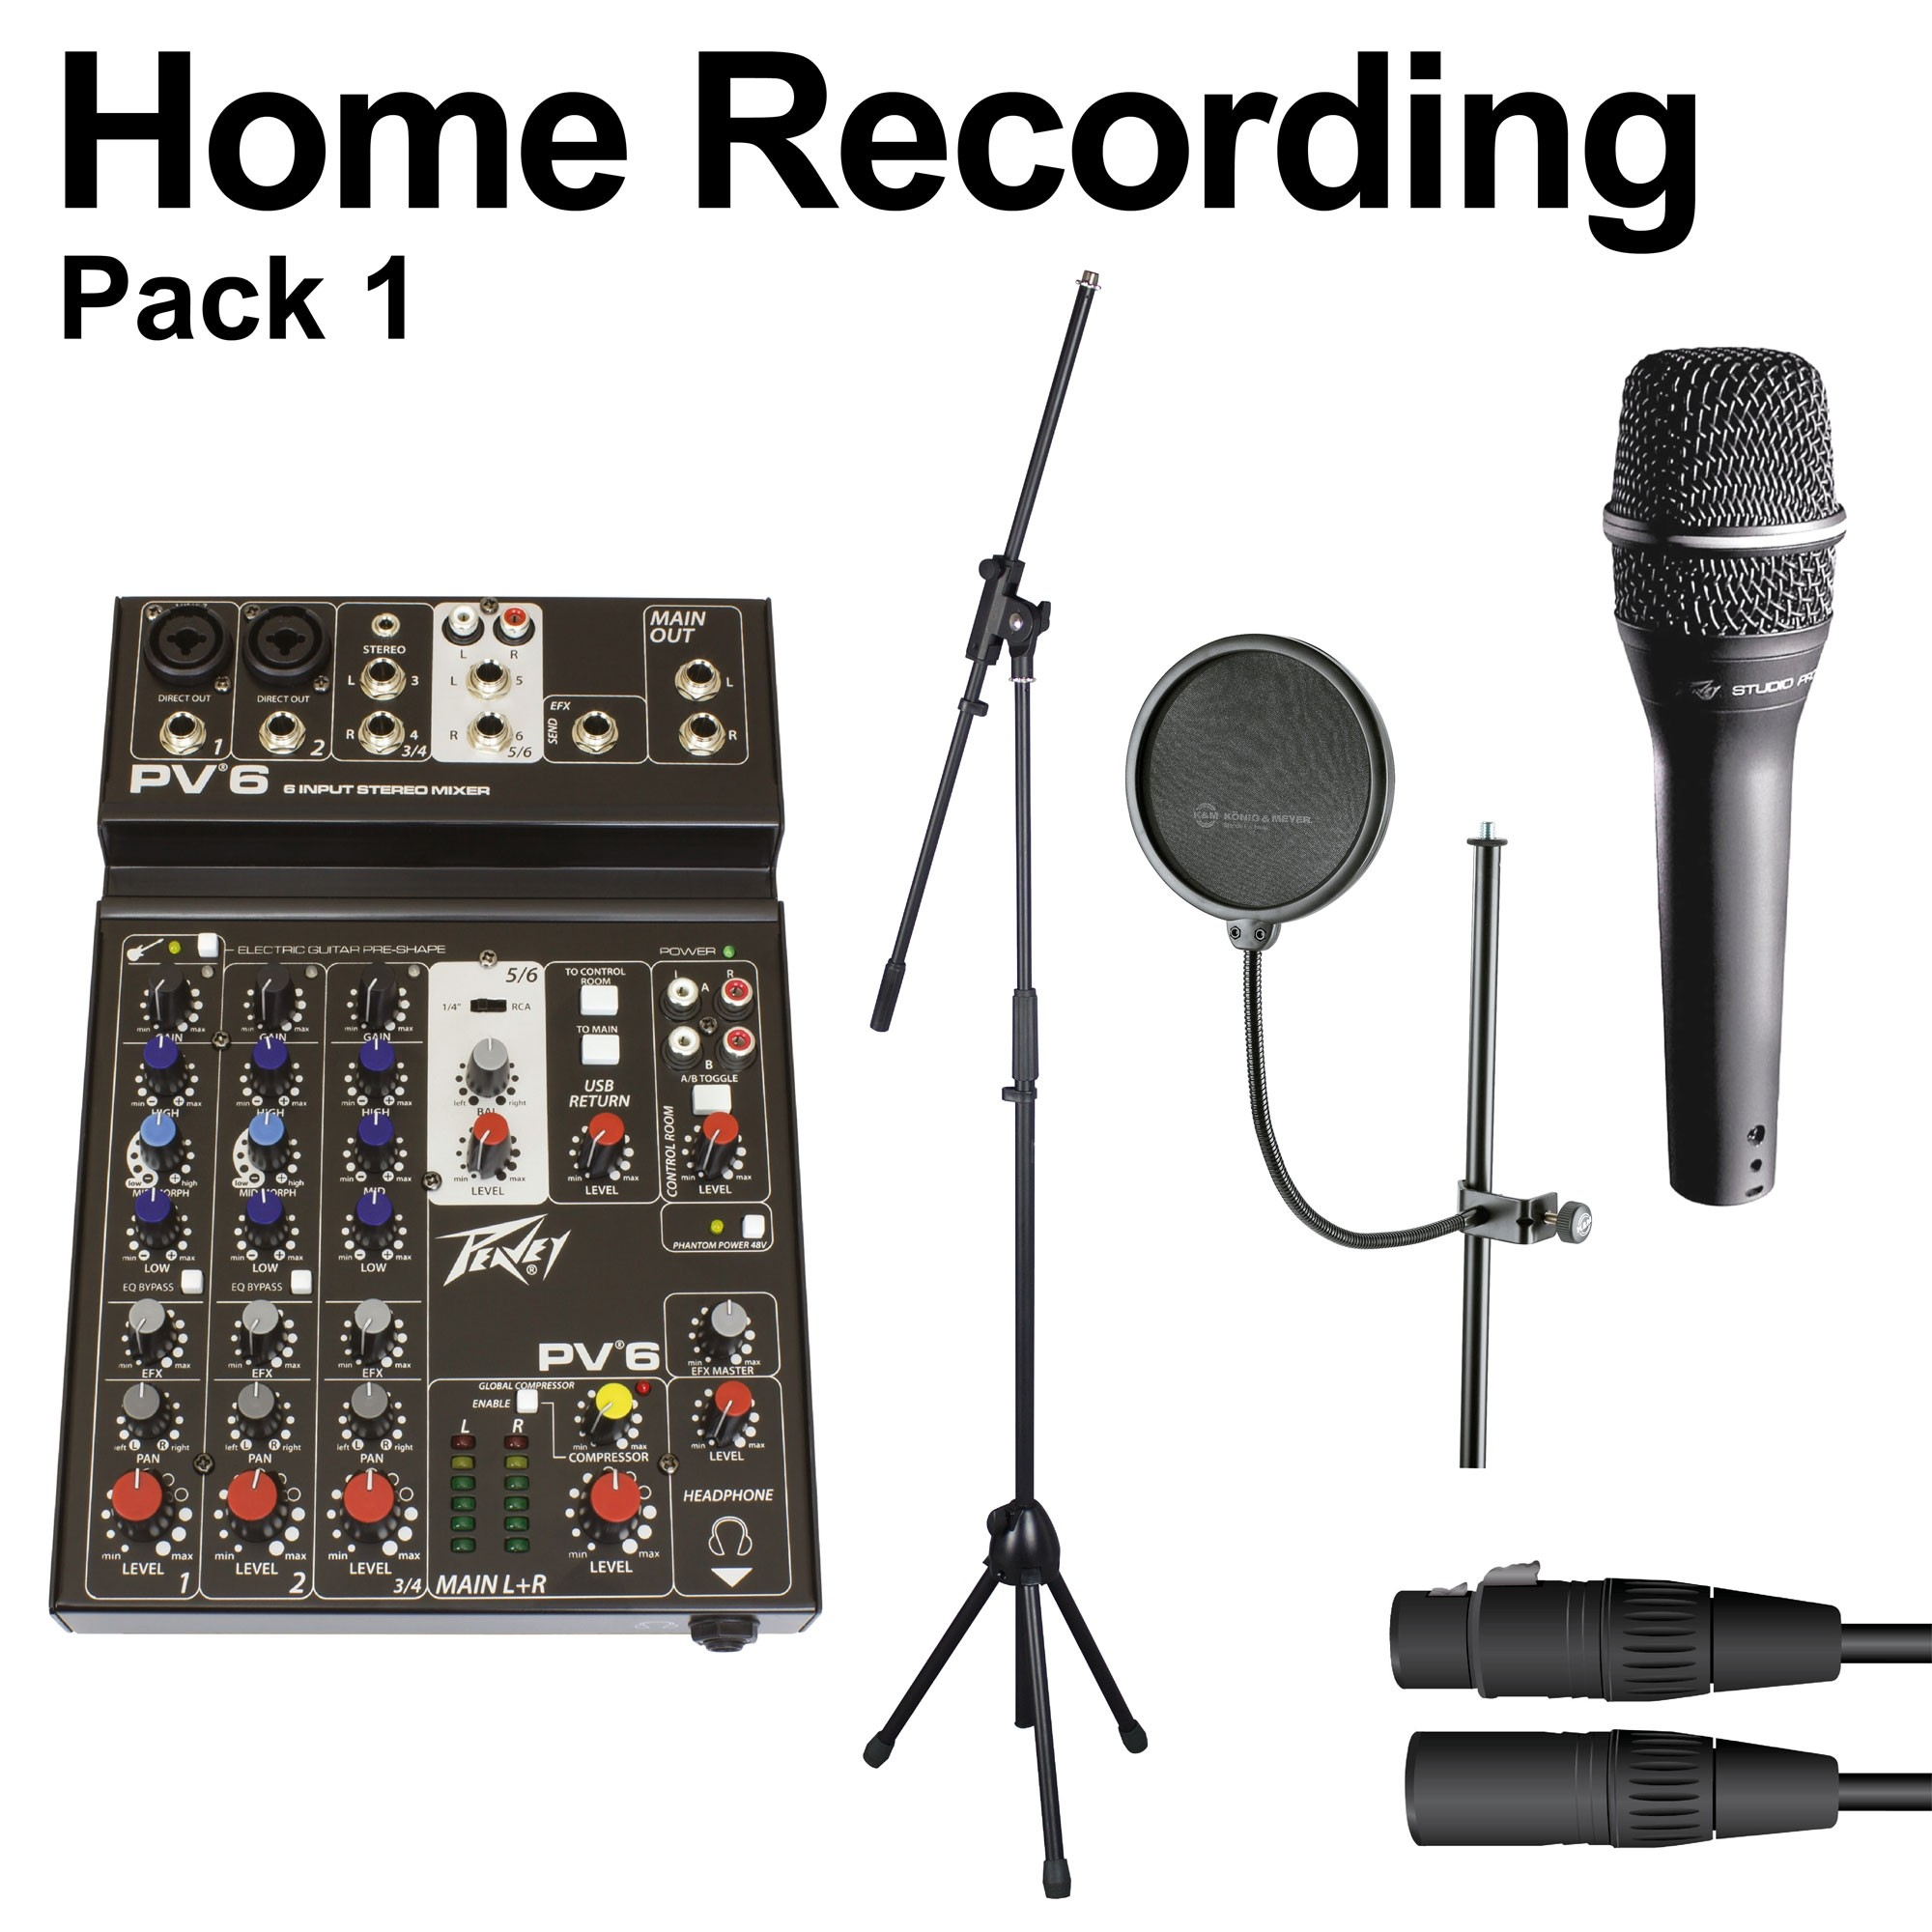 HOME RECORDING PACK